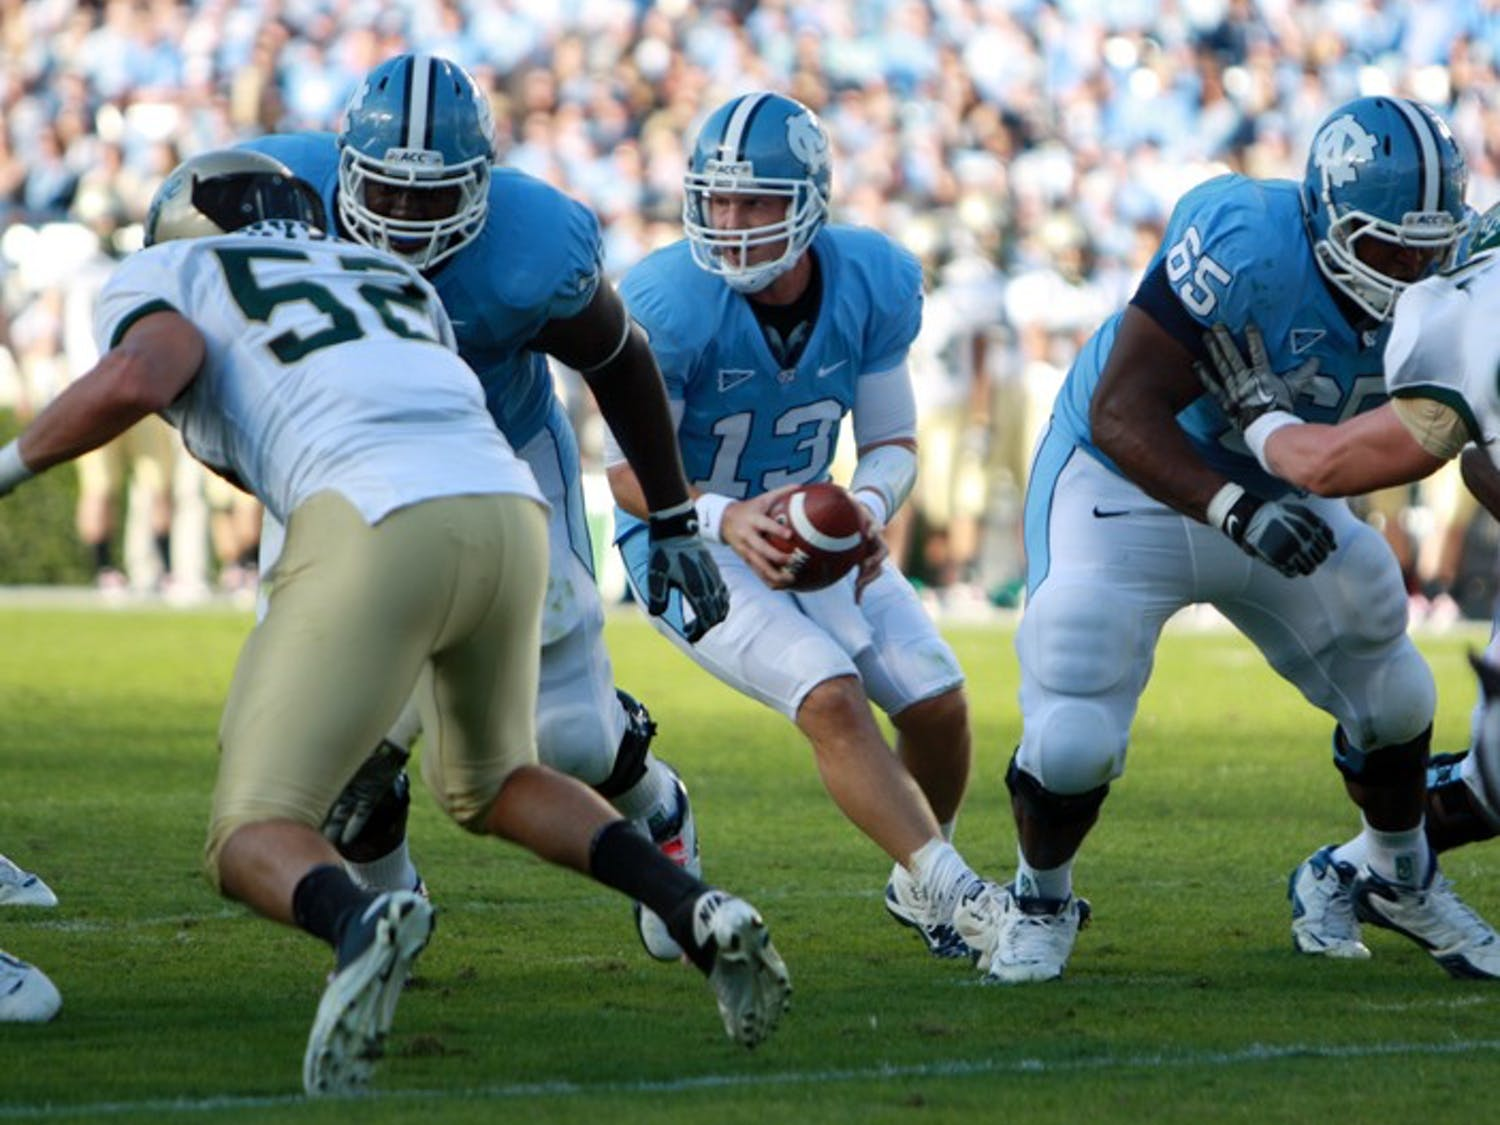 Members of UNC's offensive line collected themselves in the second half and gave quarterback T.J. Yates time to lead two fourth-quarter touchdown drives.